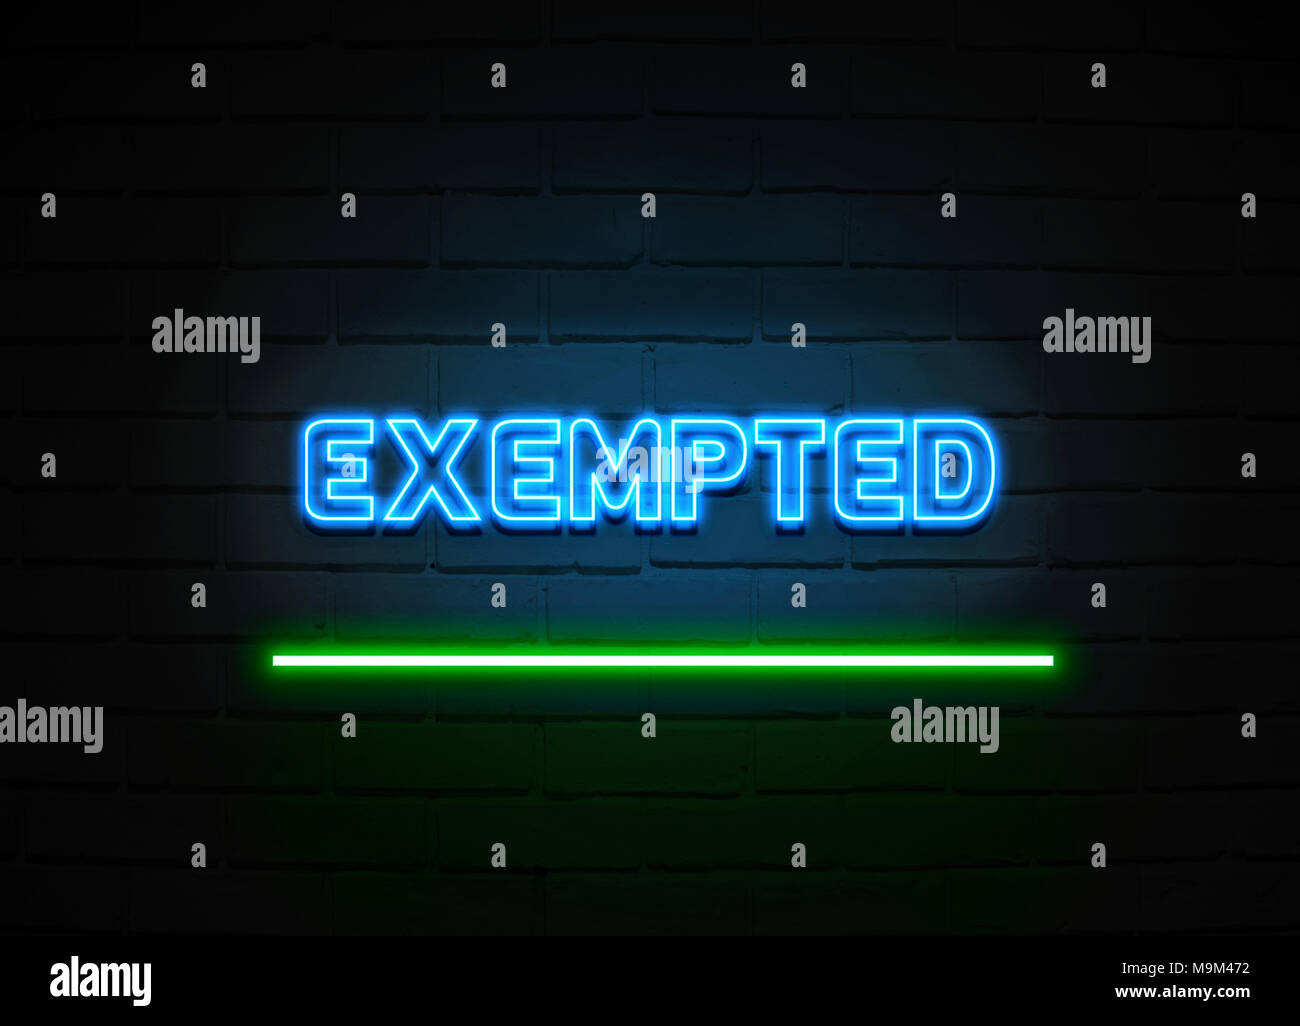 Exempted neon sign - Glowing Neon Sign on brickwall wall - 3D rendered royalty free stock illustration. - Stock Image